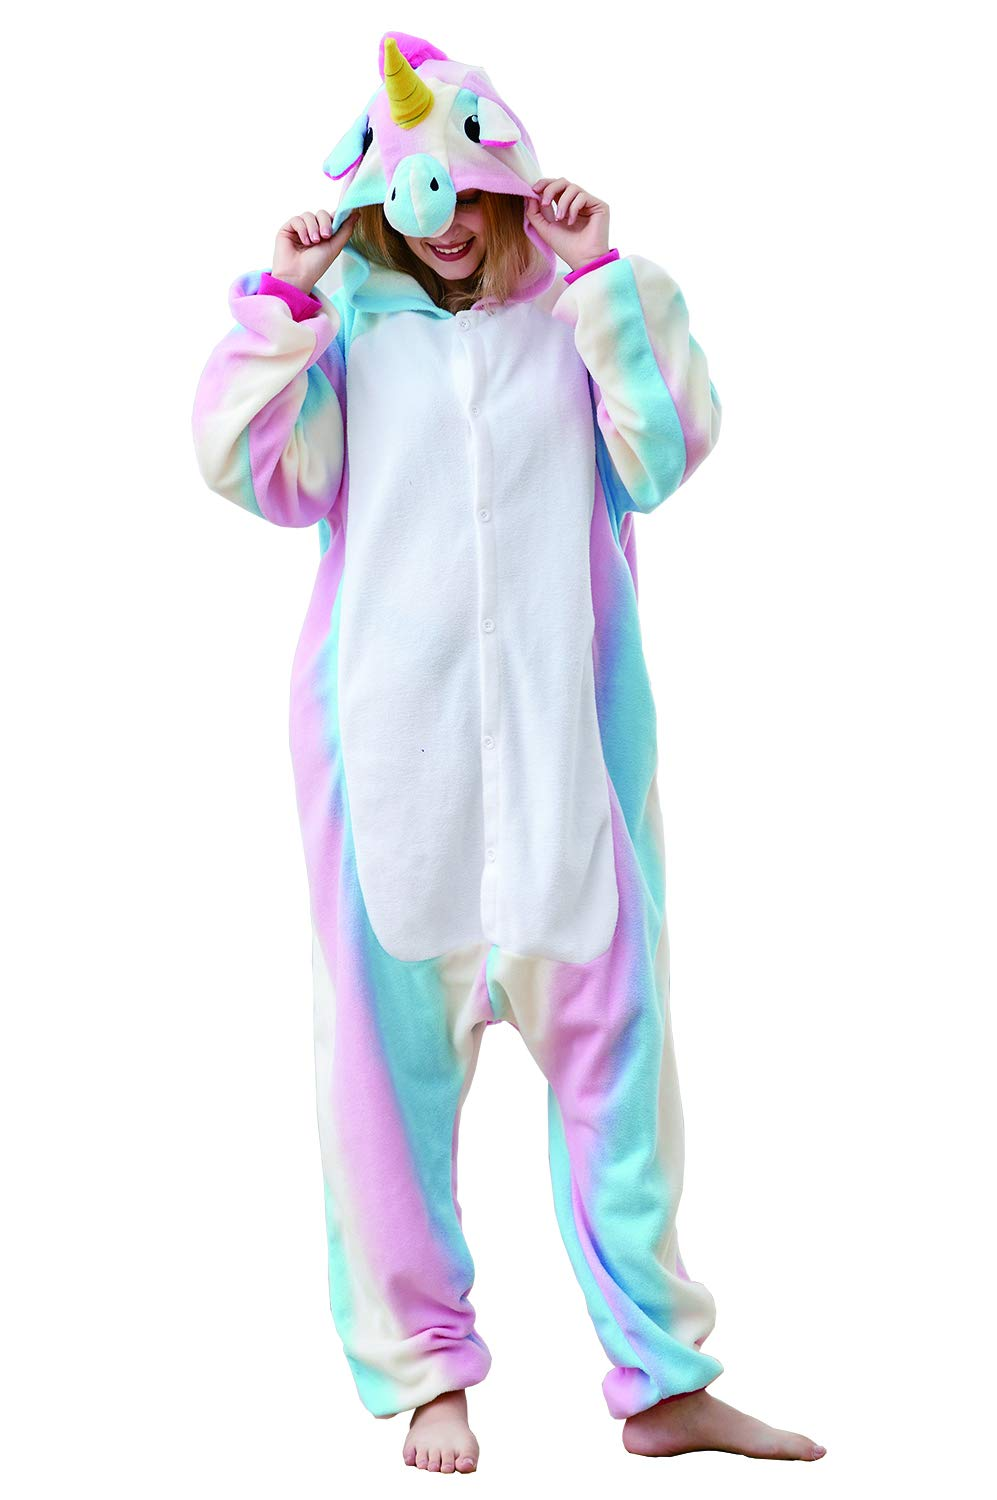 Unisex Adult Cute Animal Pajamas Onesies,One-Piece Cosplay Costume Jumpsuit Outfit XL by Mybei (Image #2)